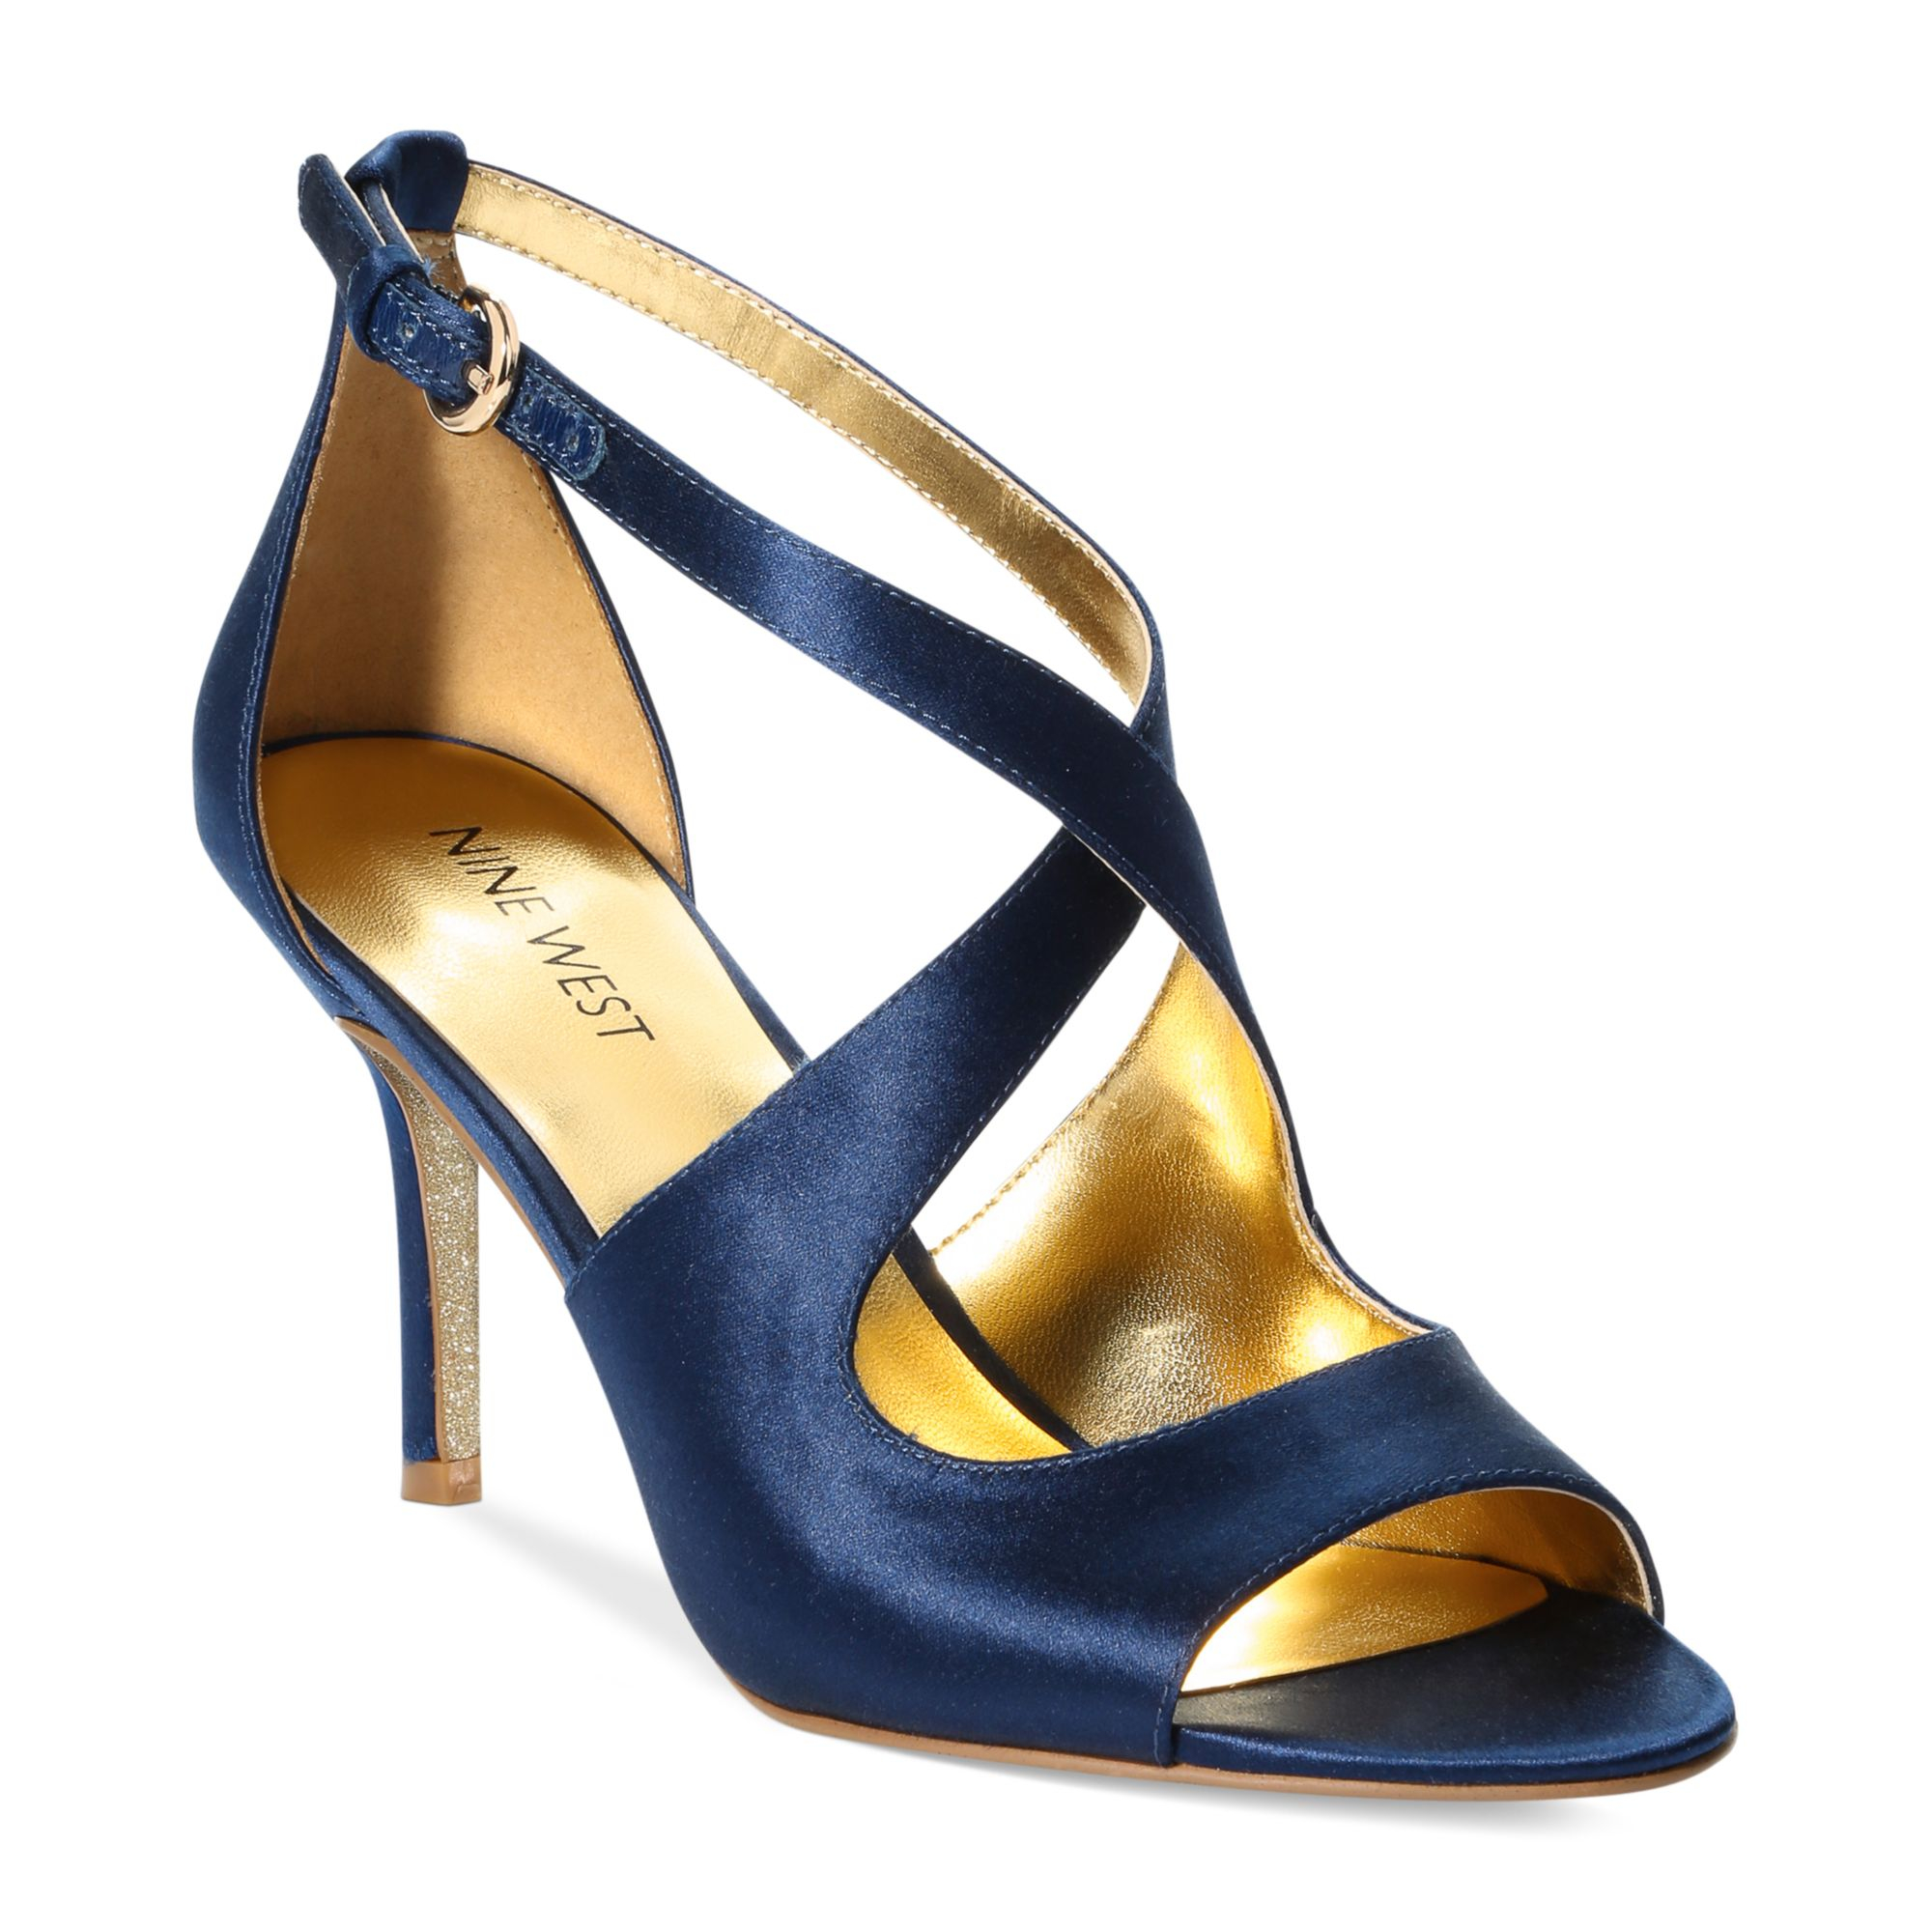 Nine West Womens Navy Shoes